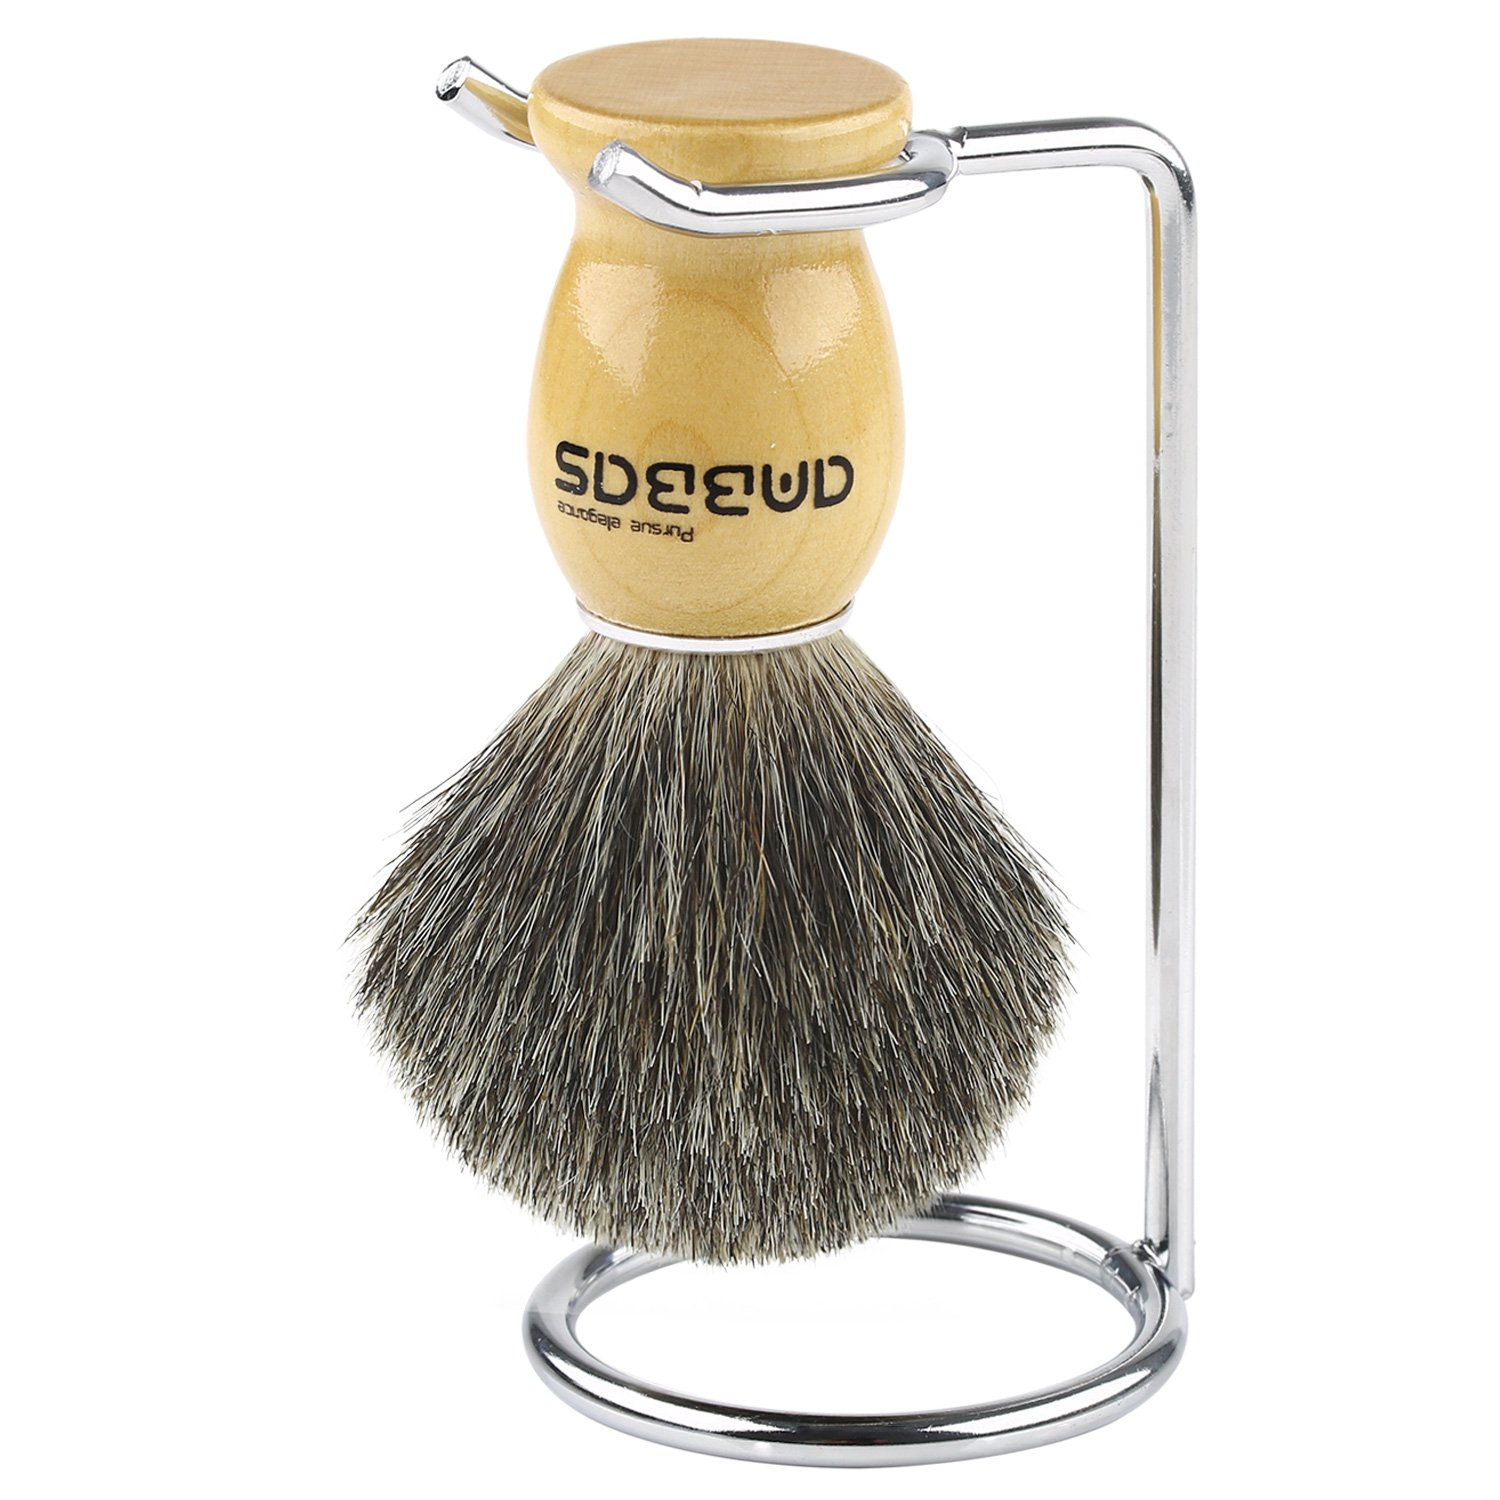 Shaving Brush Set 4in1 Anbbas Genuine Badger Shave Brush Wood Handle, Stainless Steel Shaving Stand and Soap Cup Dia 3.2 with Shaving Soap Bar Natural & Organic 3.5oz for Men Manual Shaving